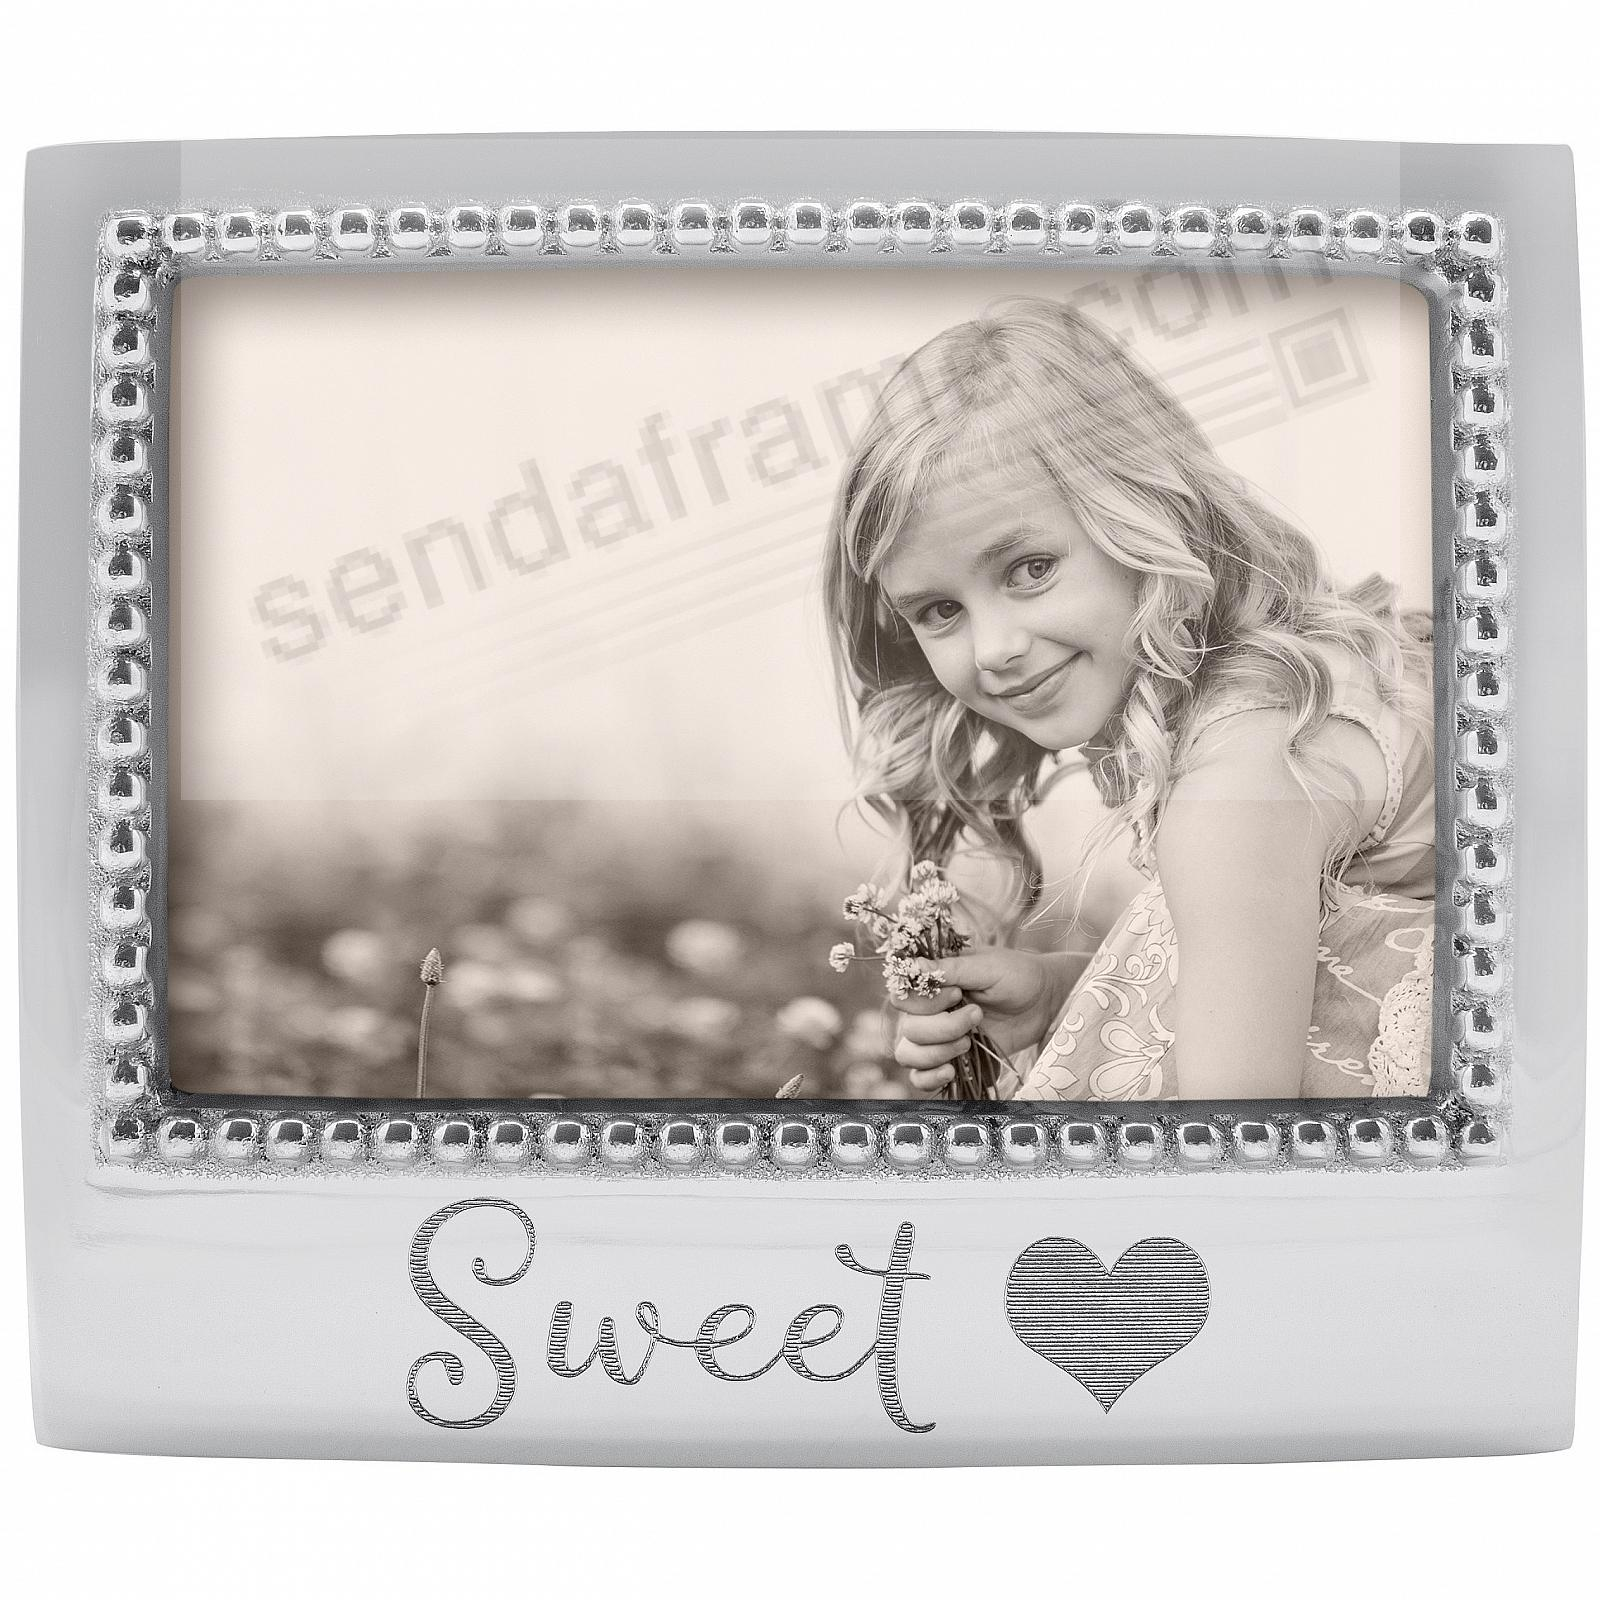 The original SWEET {HEART} Statement frame crafted by Mariposa®